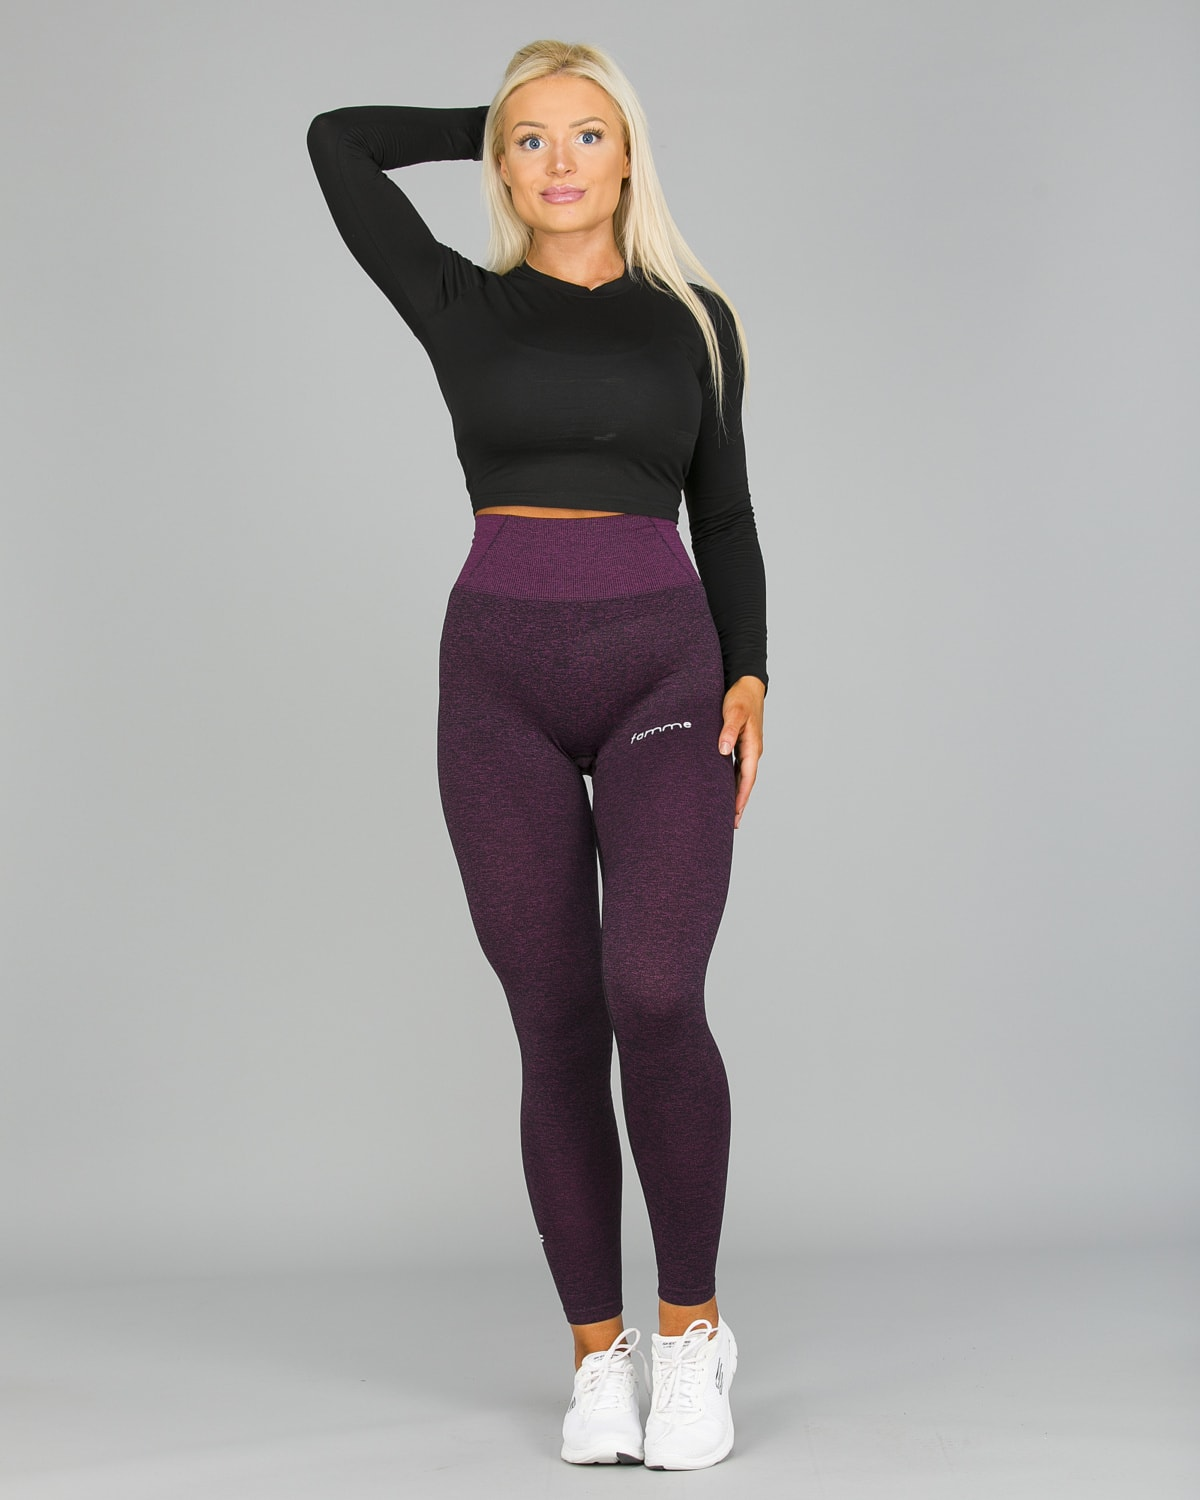 FAMME Lavender Seamless Essential Tights13